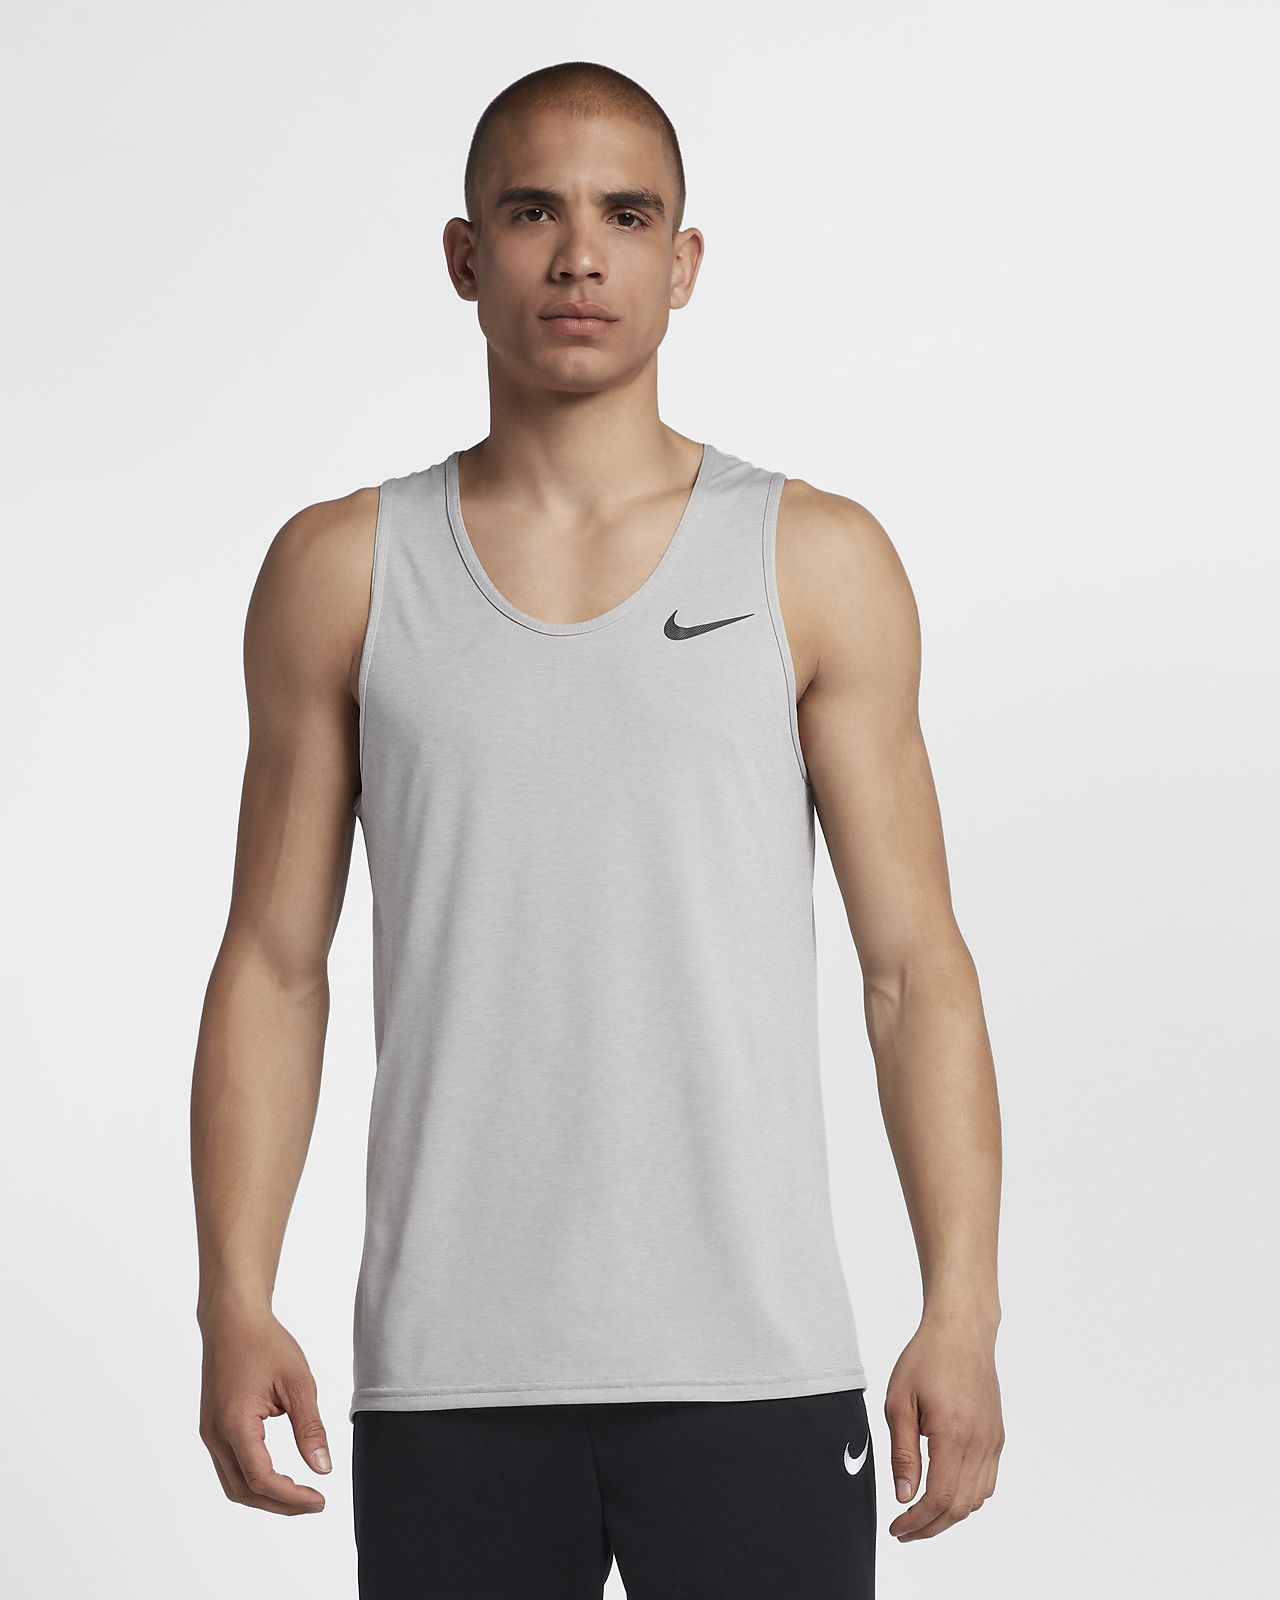 f8f8c1925 Nike Breathe Men's Training Tank. Nike.com AU